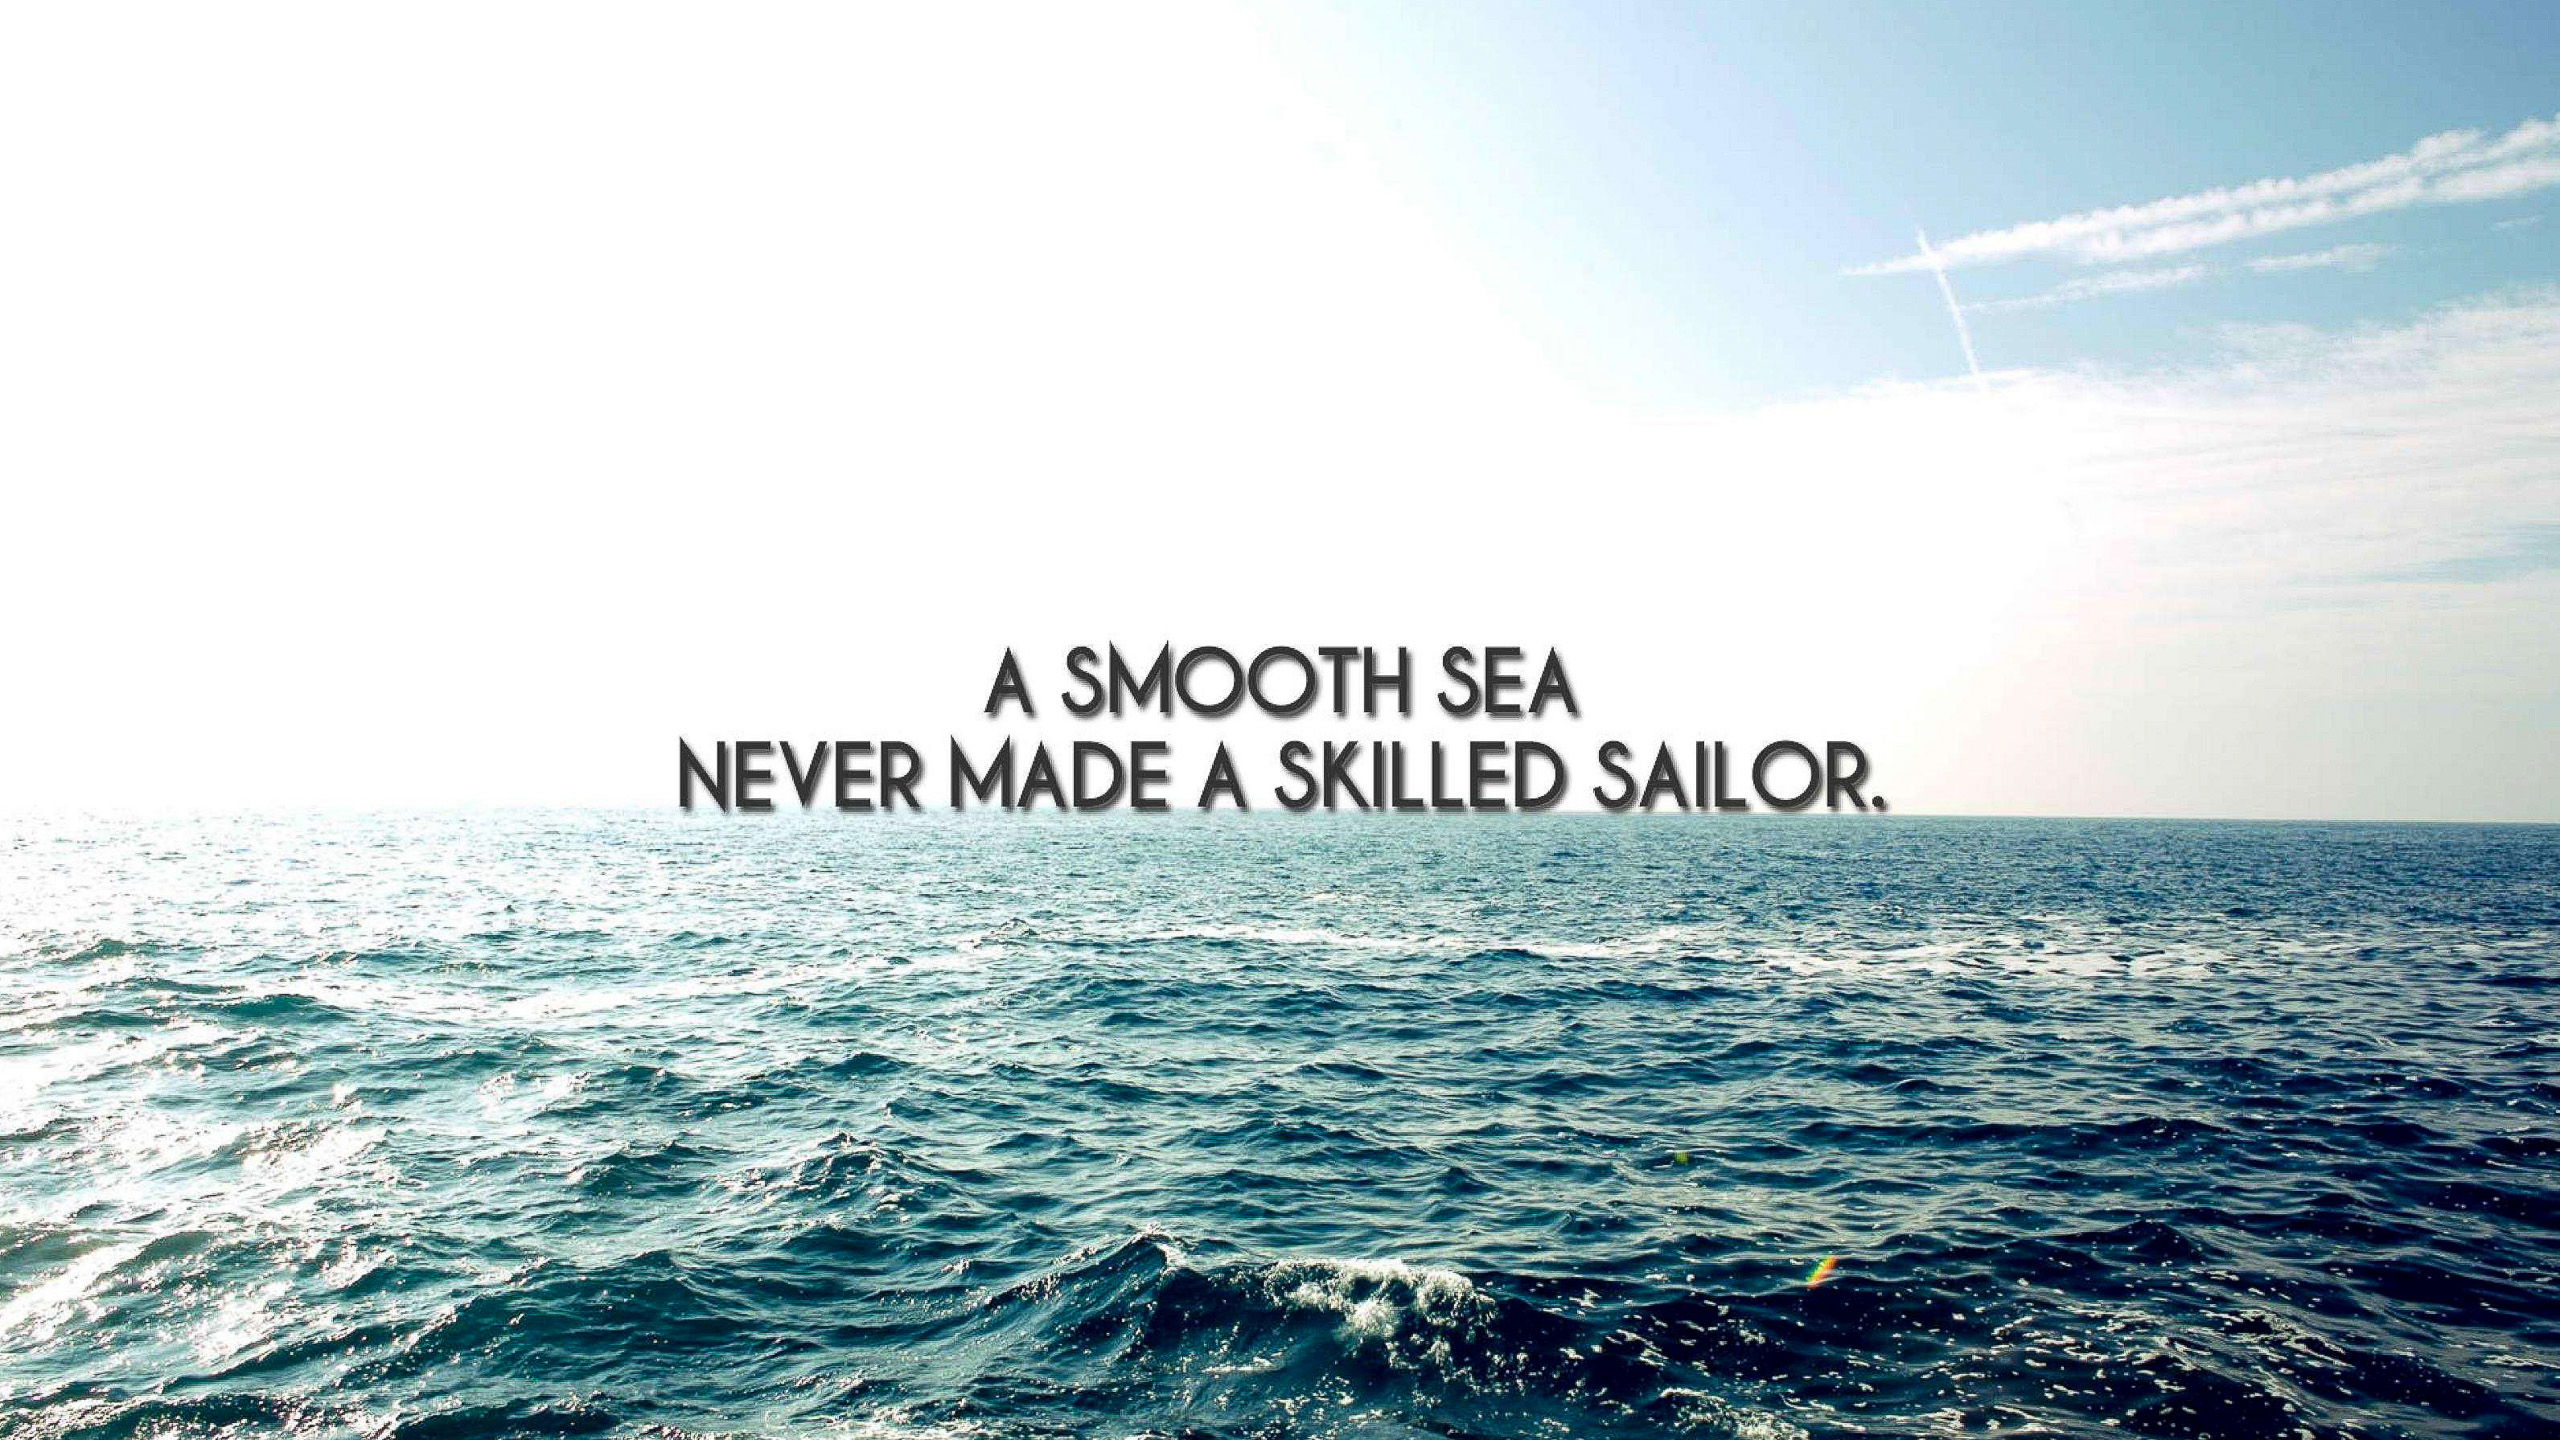 http://s3.amazonaws.com/images.horgandesignbuild.com/blog/A-smooth-sea-never-made-a-skilled-sailor.jpg